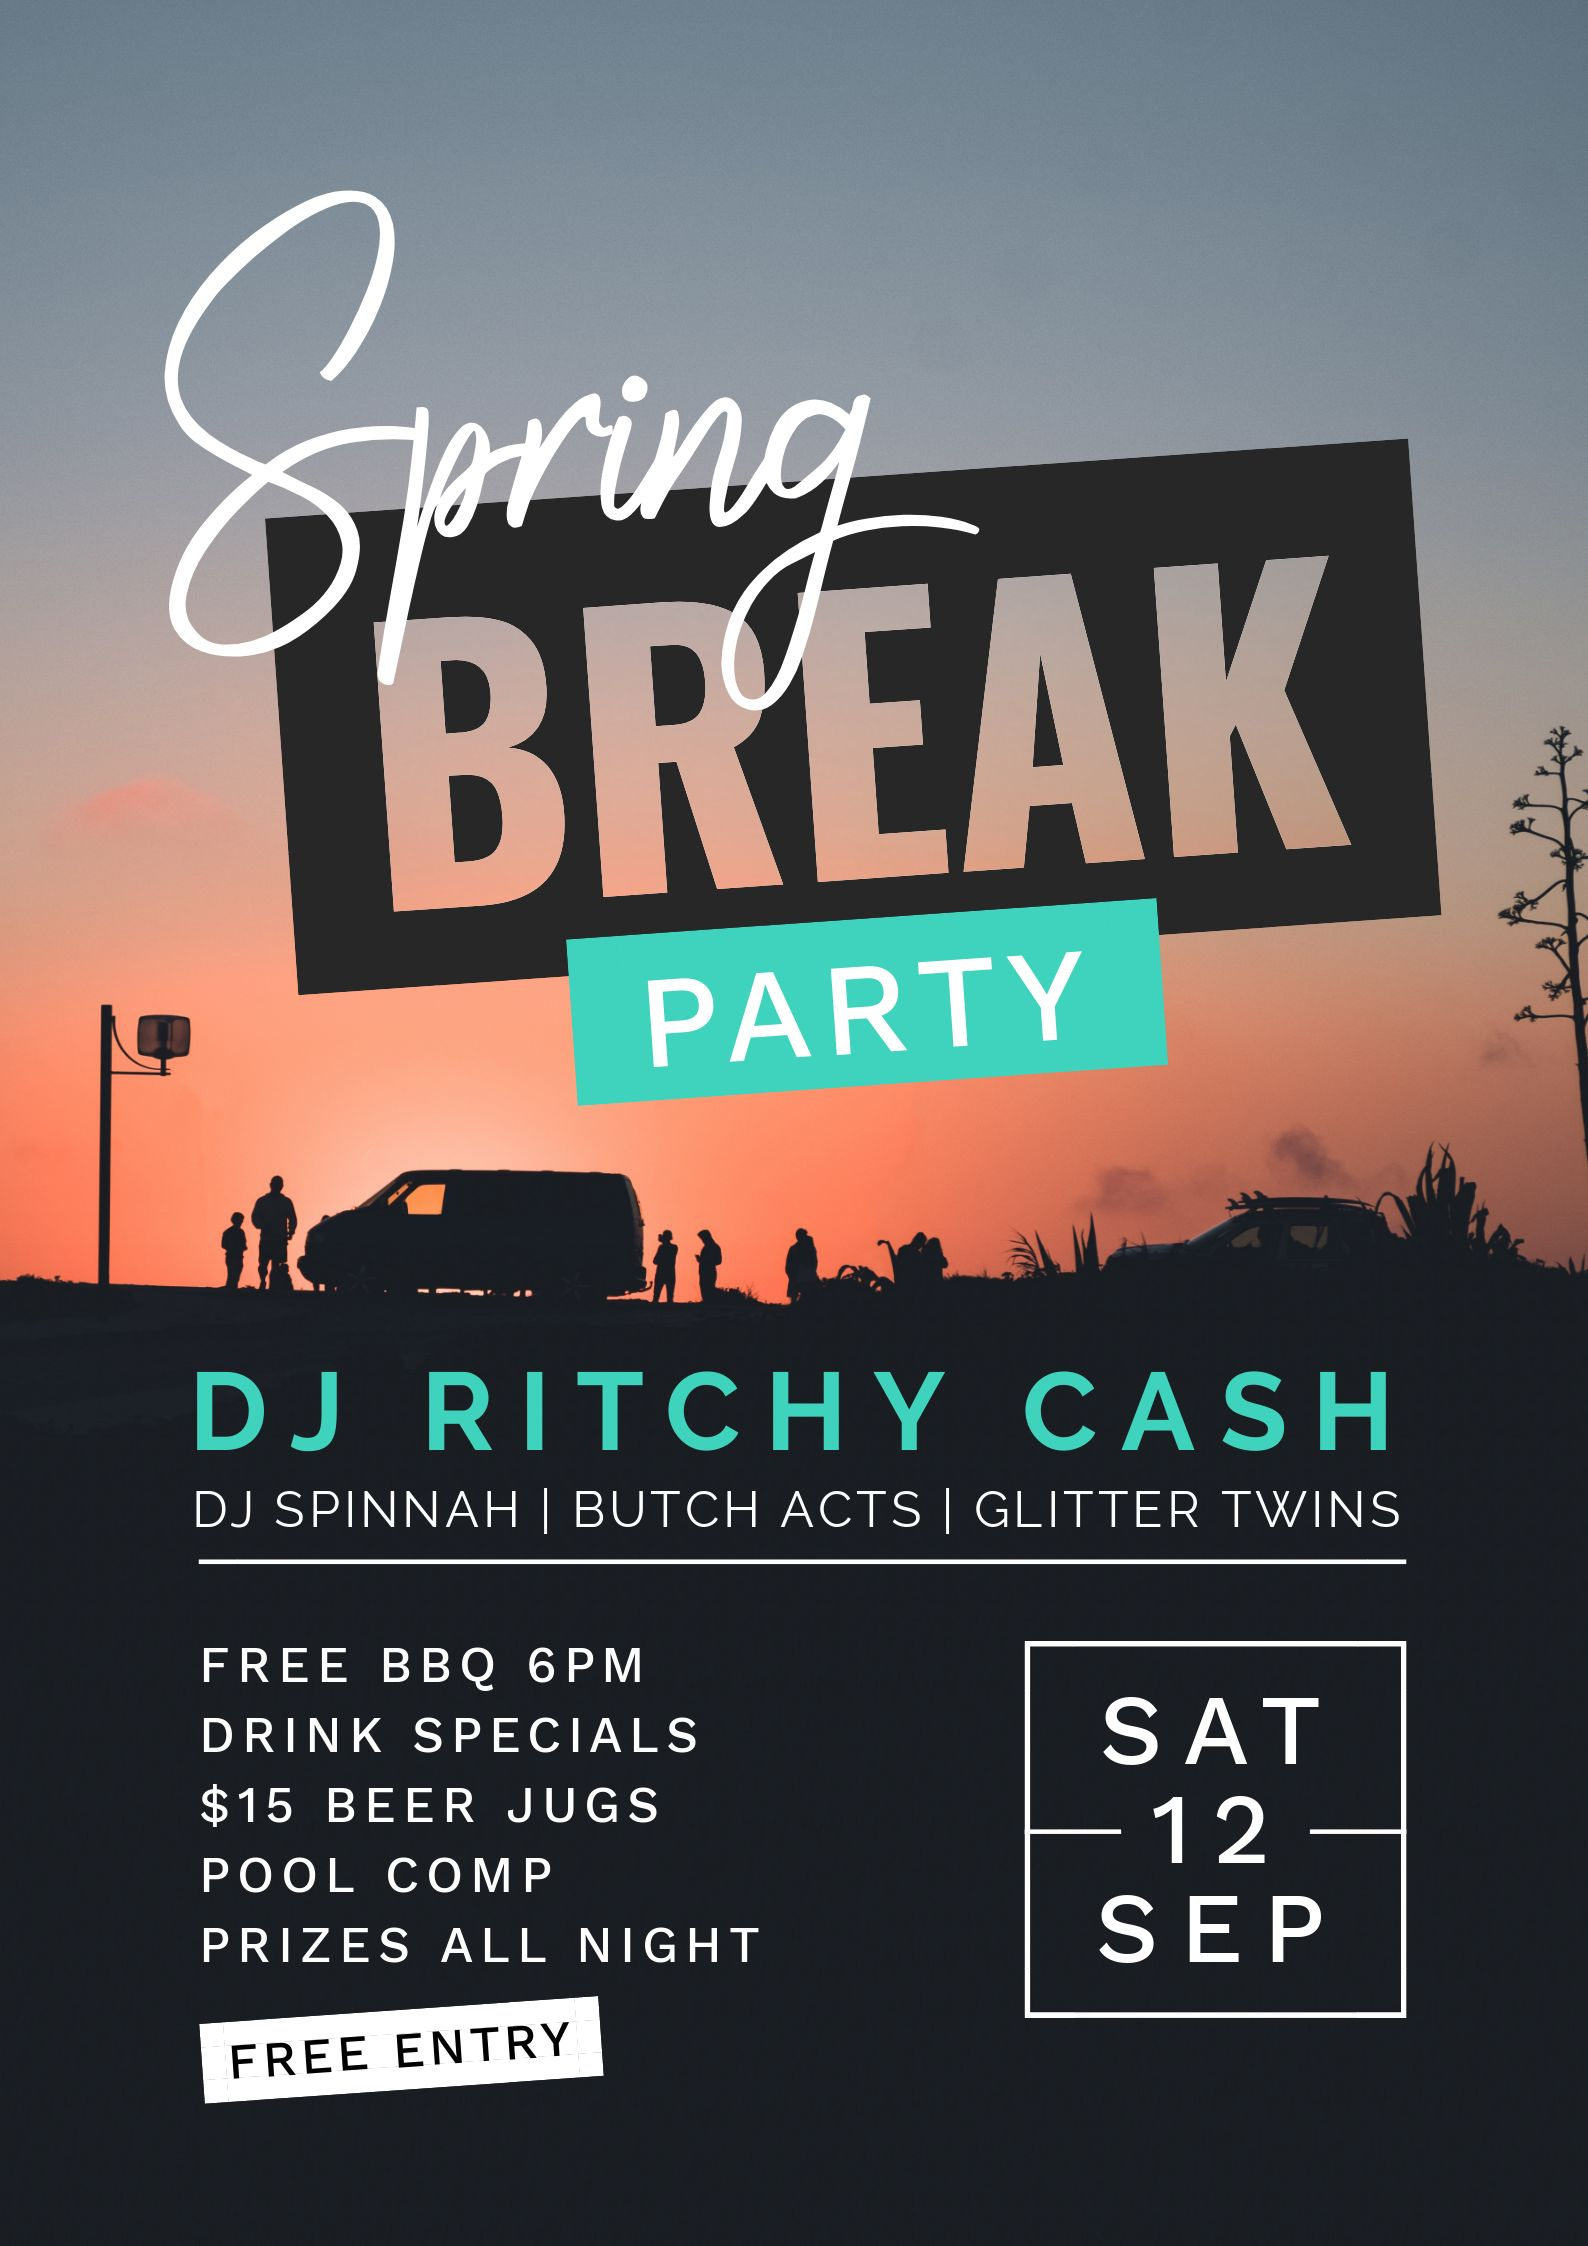 Spring Break Beach Party Poster using Text Masking - 7 Beautiful Text Masks - How to WOW with Images in Text